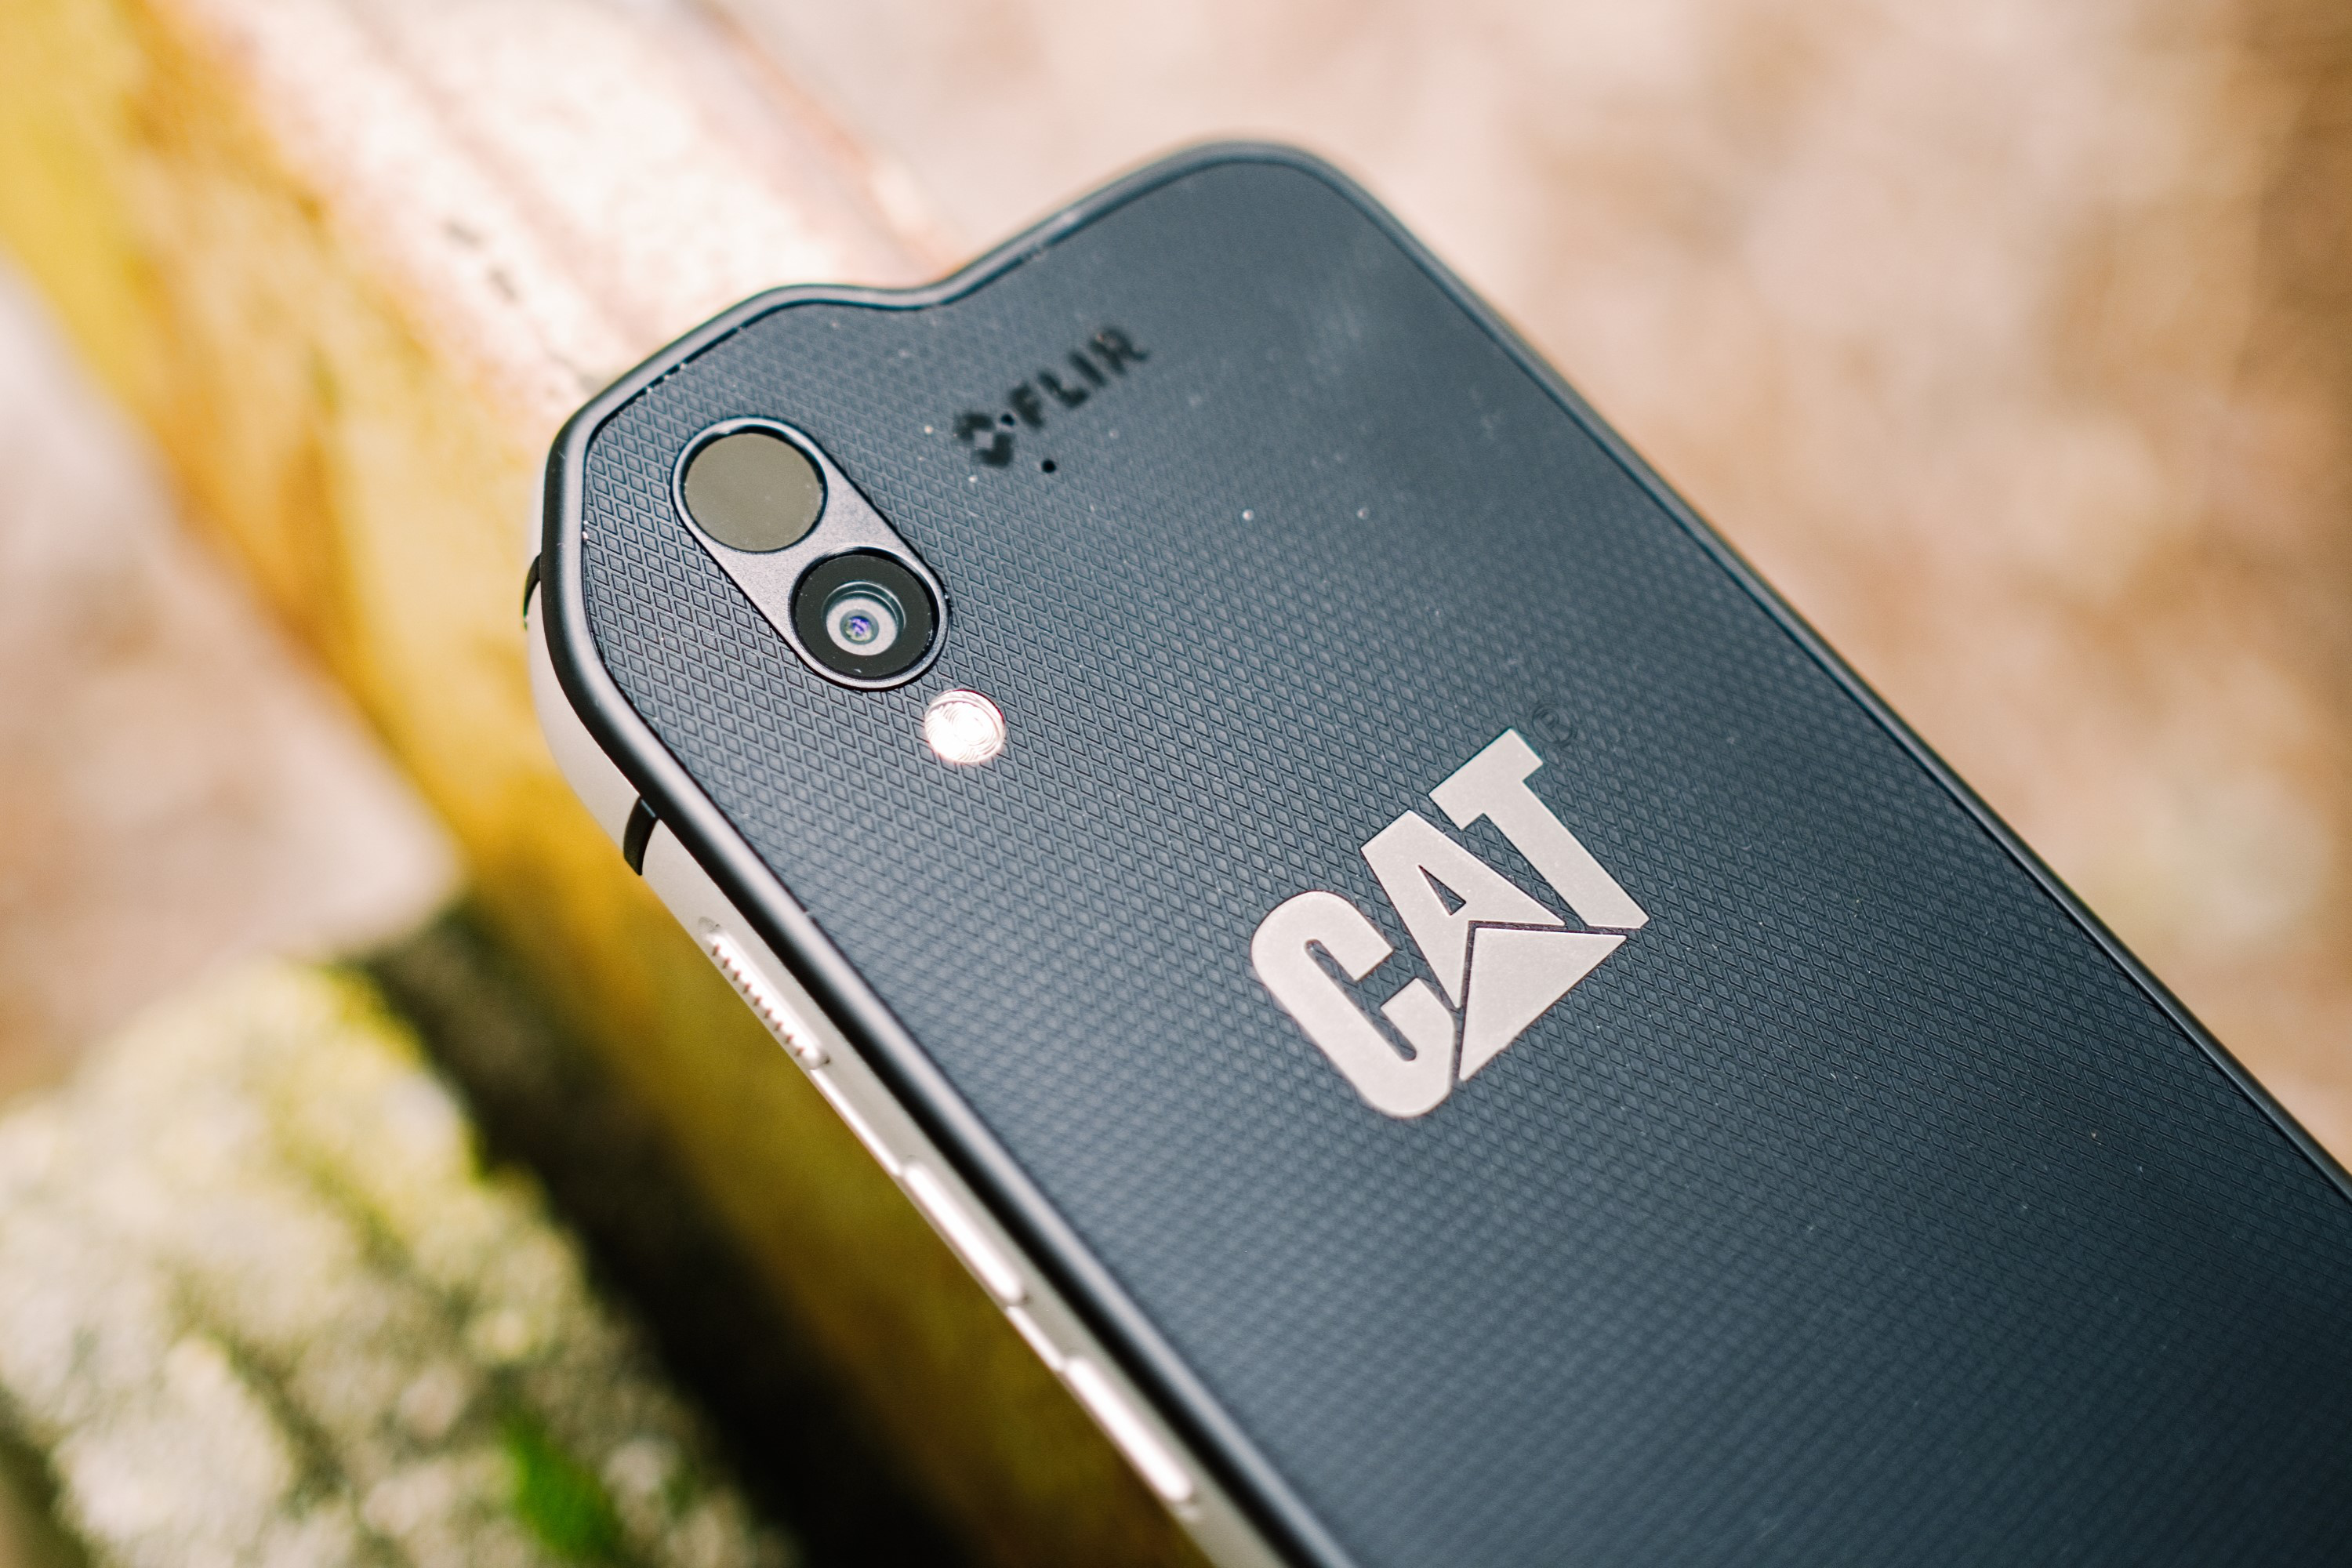 Cat Introduces S61 Smartphone To Market